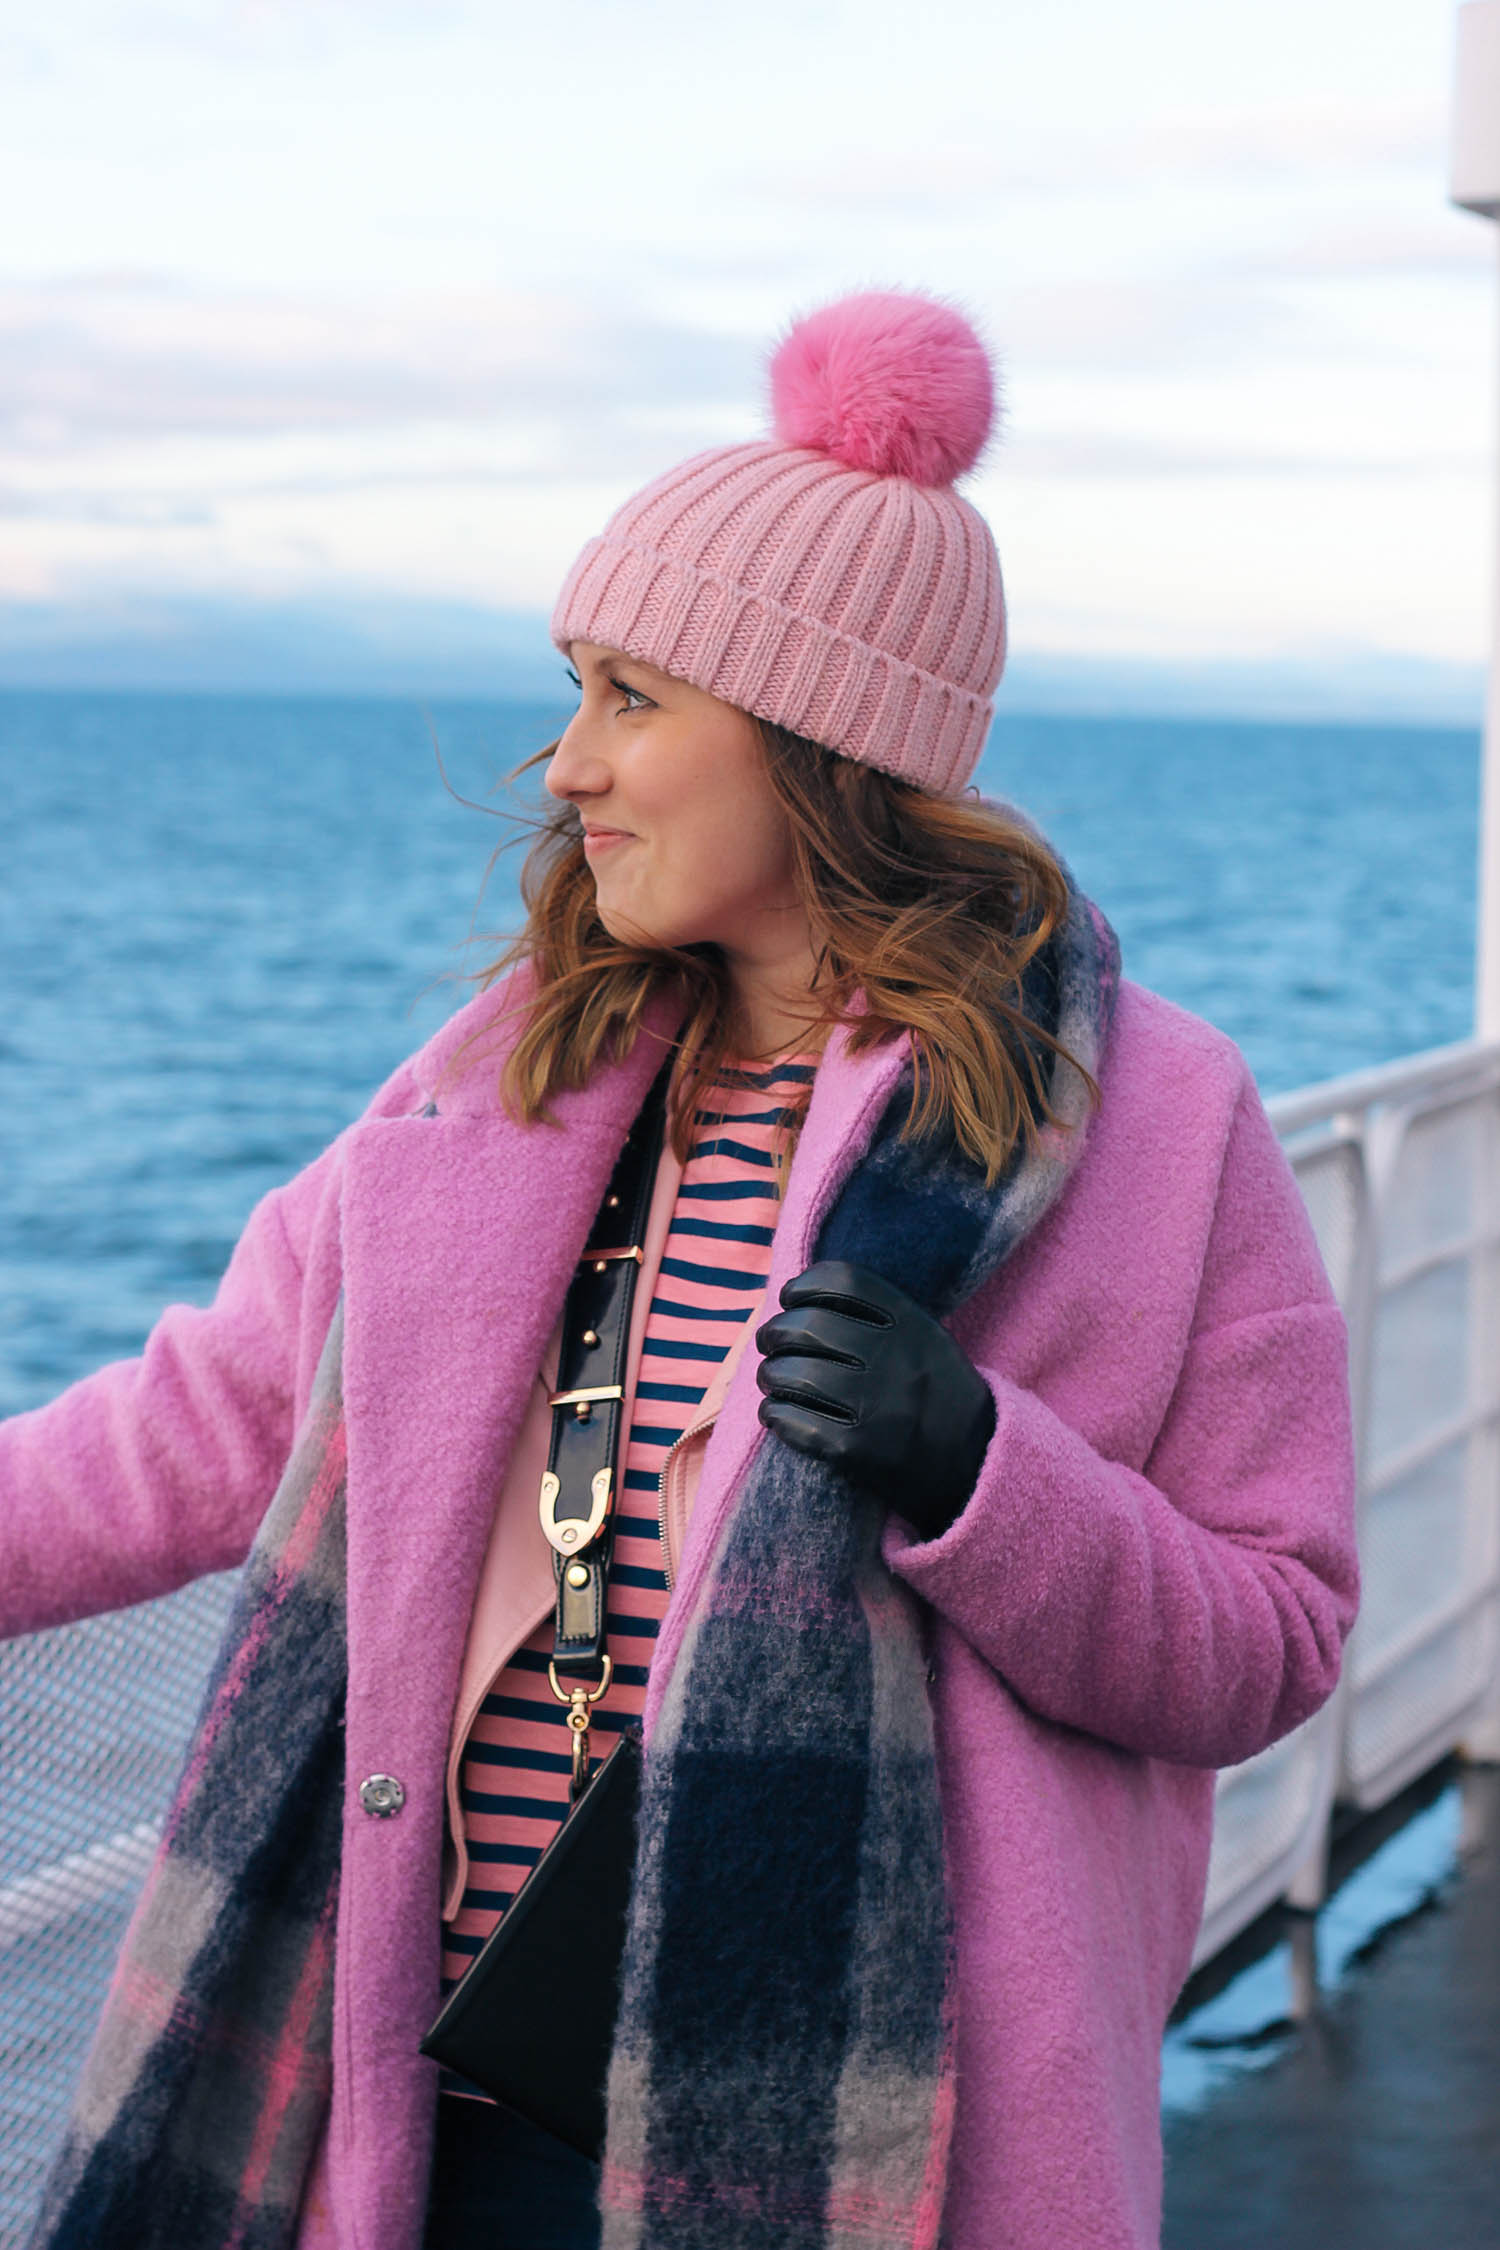 ferry-ride-pink-jacket-5